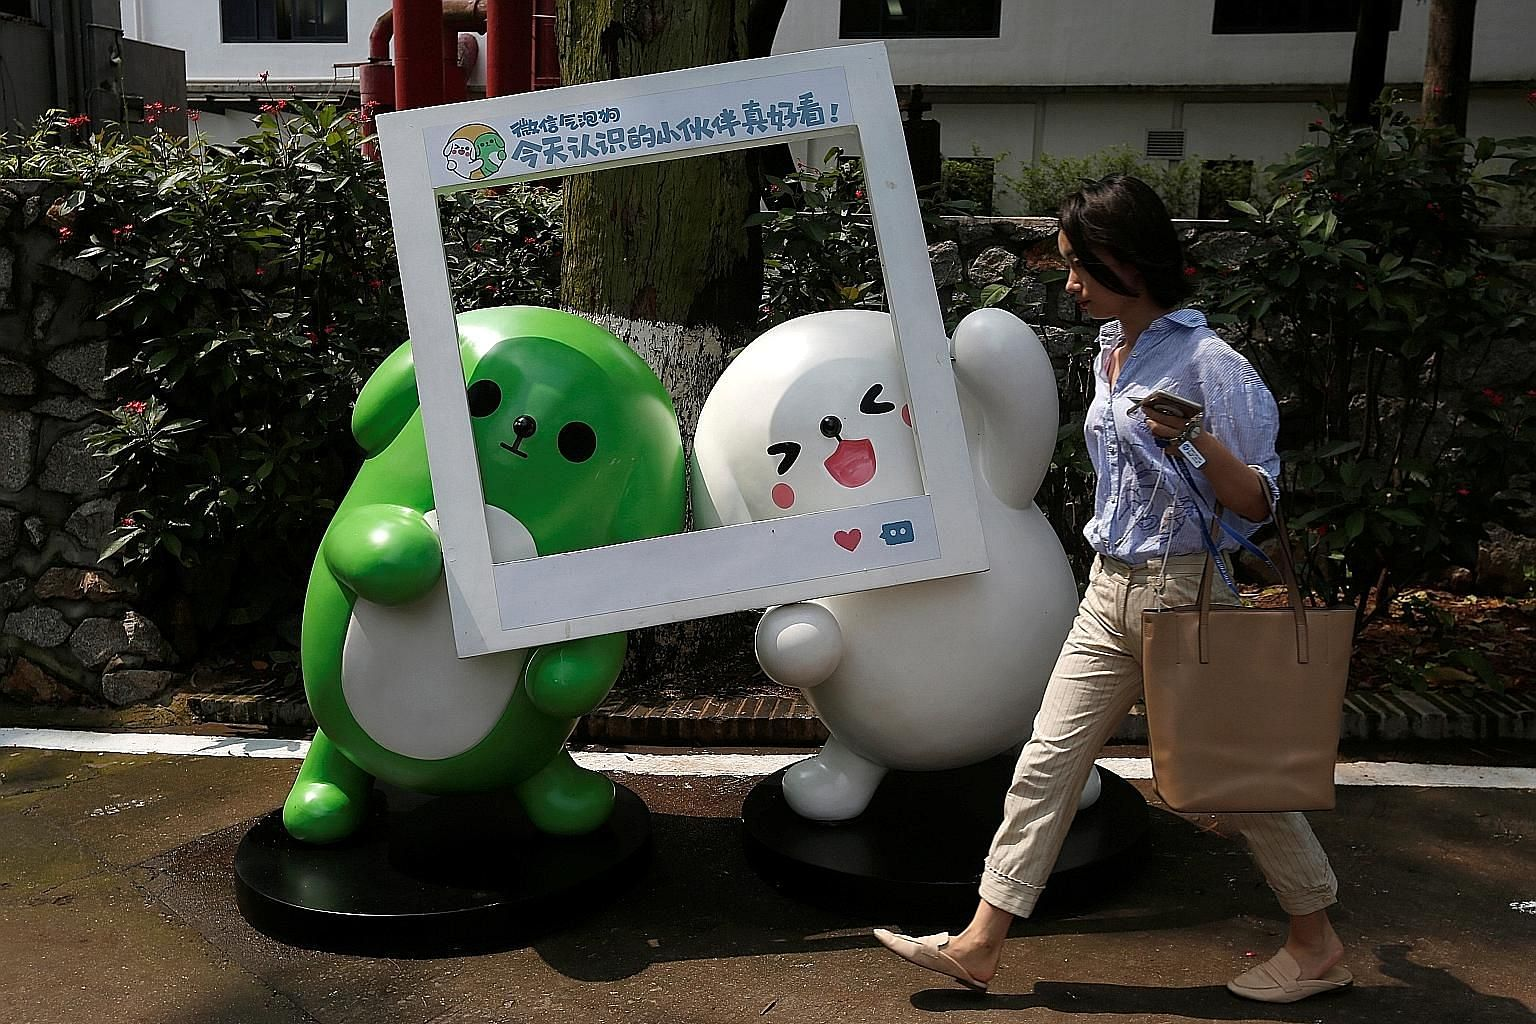 Mascots of Tencent's mobile chat service WeChat inside Guangzhou's TIT Creativity Industry Zone. With a market value of over $460 billion, Tencent is now worth almost half as much as all the companies listed on the Singapore Exchange, even though it